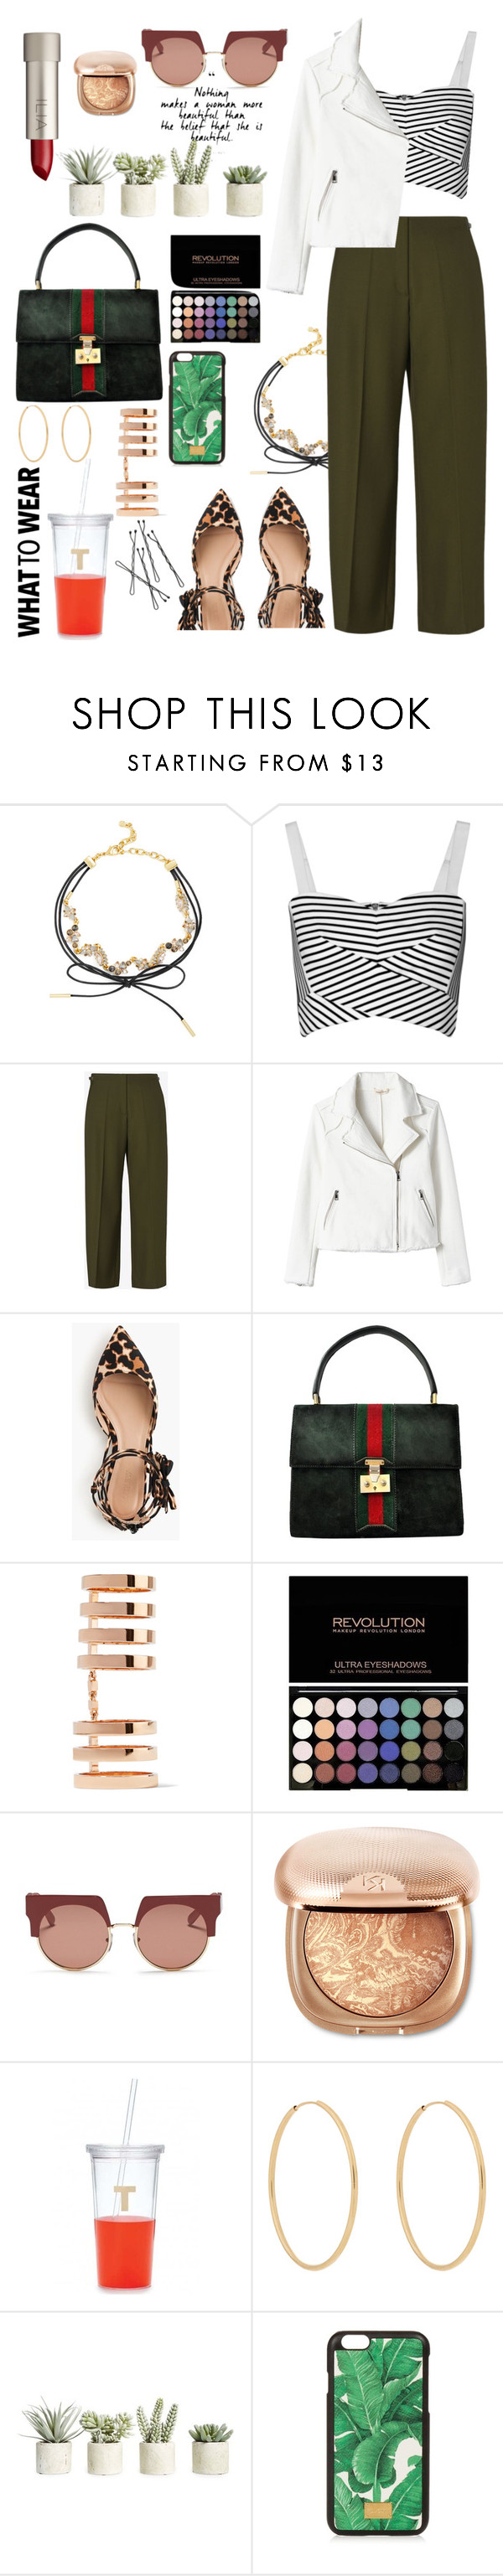 """What to Wear with Flats"" by meli111 on Polyvore featuring BaubleBar, Rebecca Minkoff, Maison Margiela, J.Crew, Gucci, Repossi, Ilia, Marni, Kate Spade and Loren Stewart"